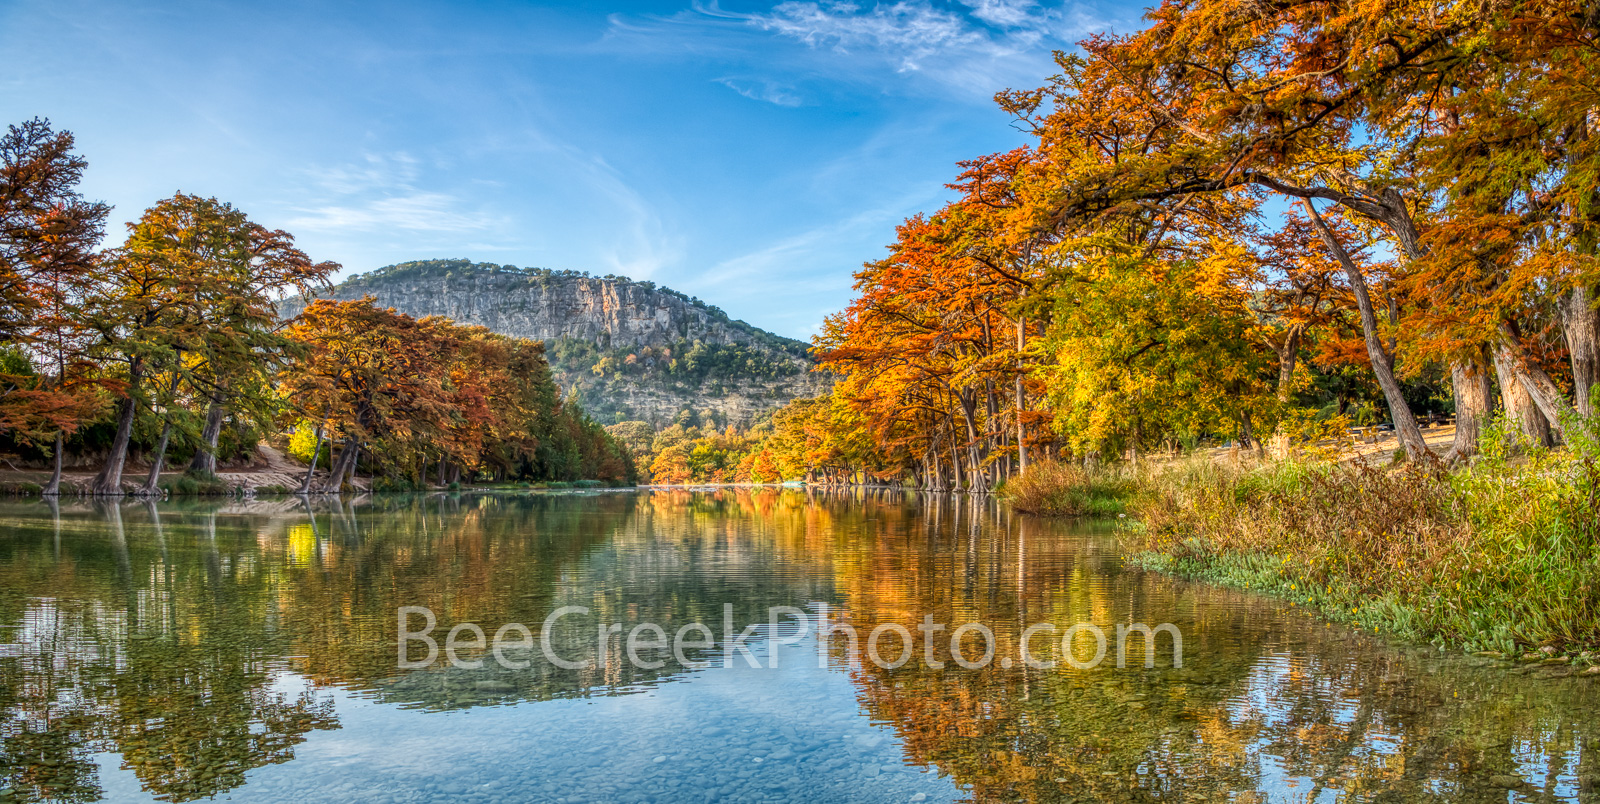 Scenic Fall Frio River Pano 19 - We capture this scenic fall frio river pano on our first trip this year into the hill country...